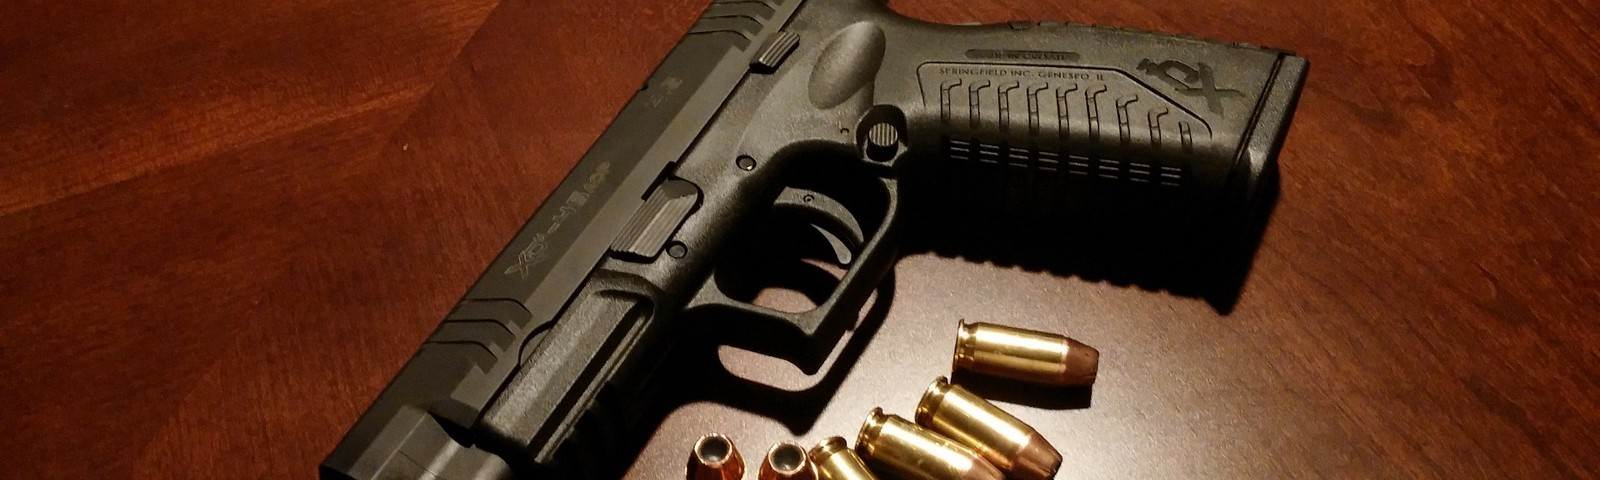 Handgun on wooden table with 7 bullets.